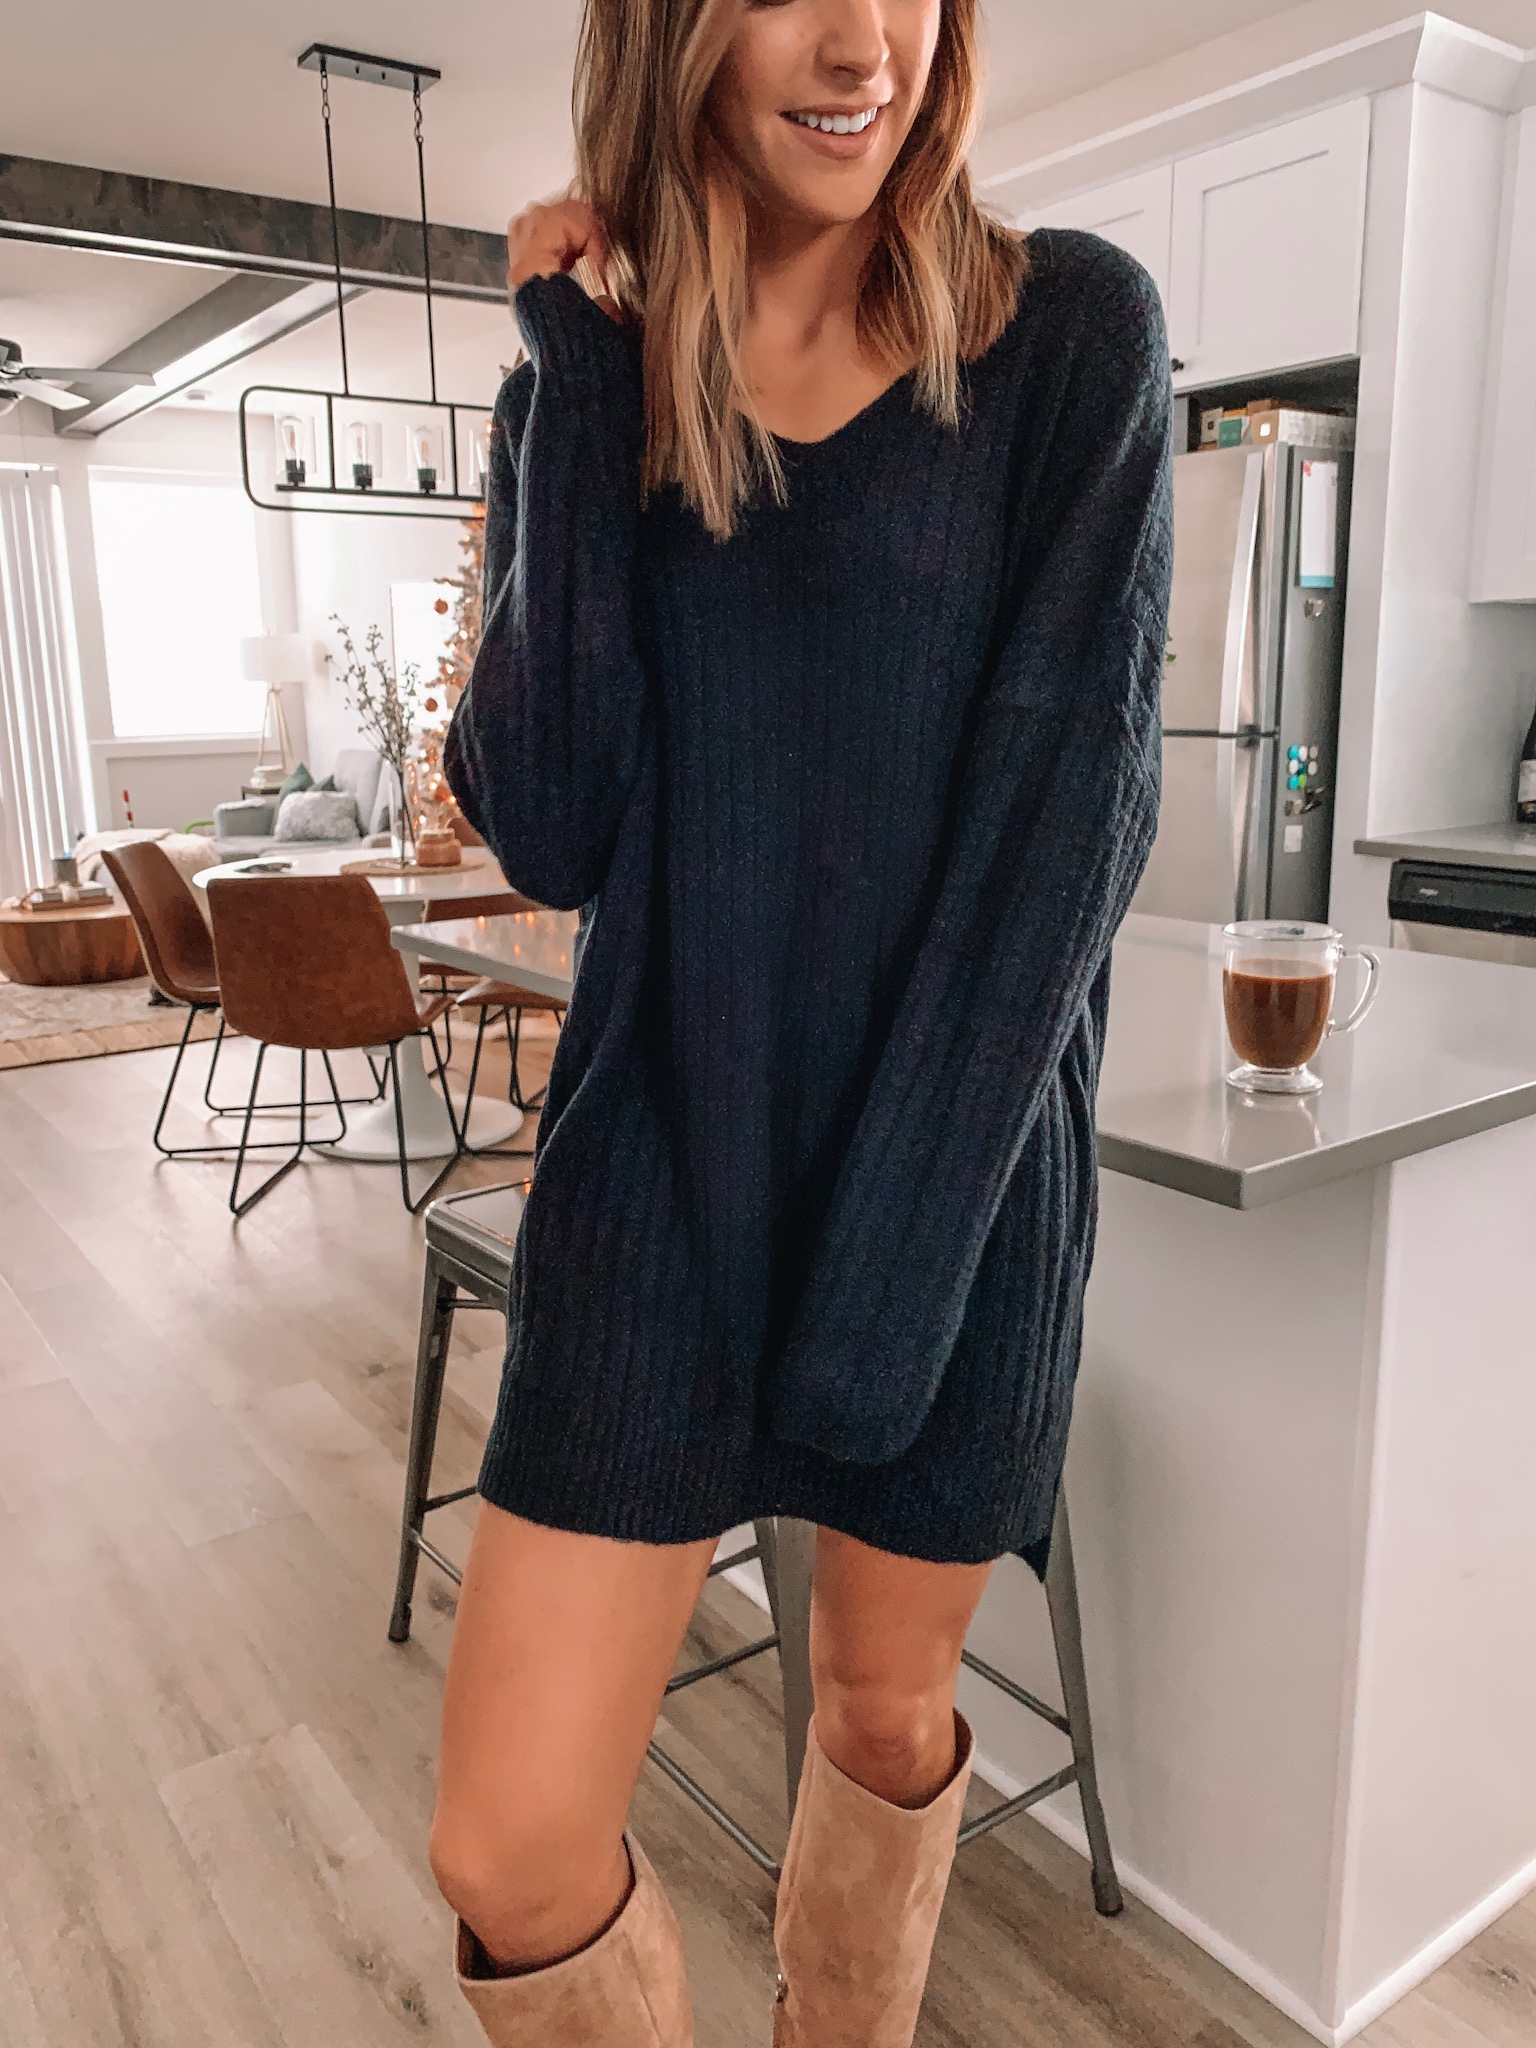 thanksgiving outfit ideas, cute, comfy, dressy, Nordstrom, black sweater dress, dreamers by debut